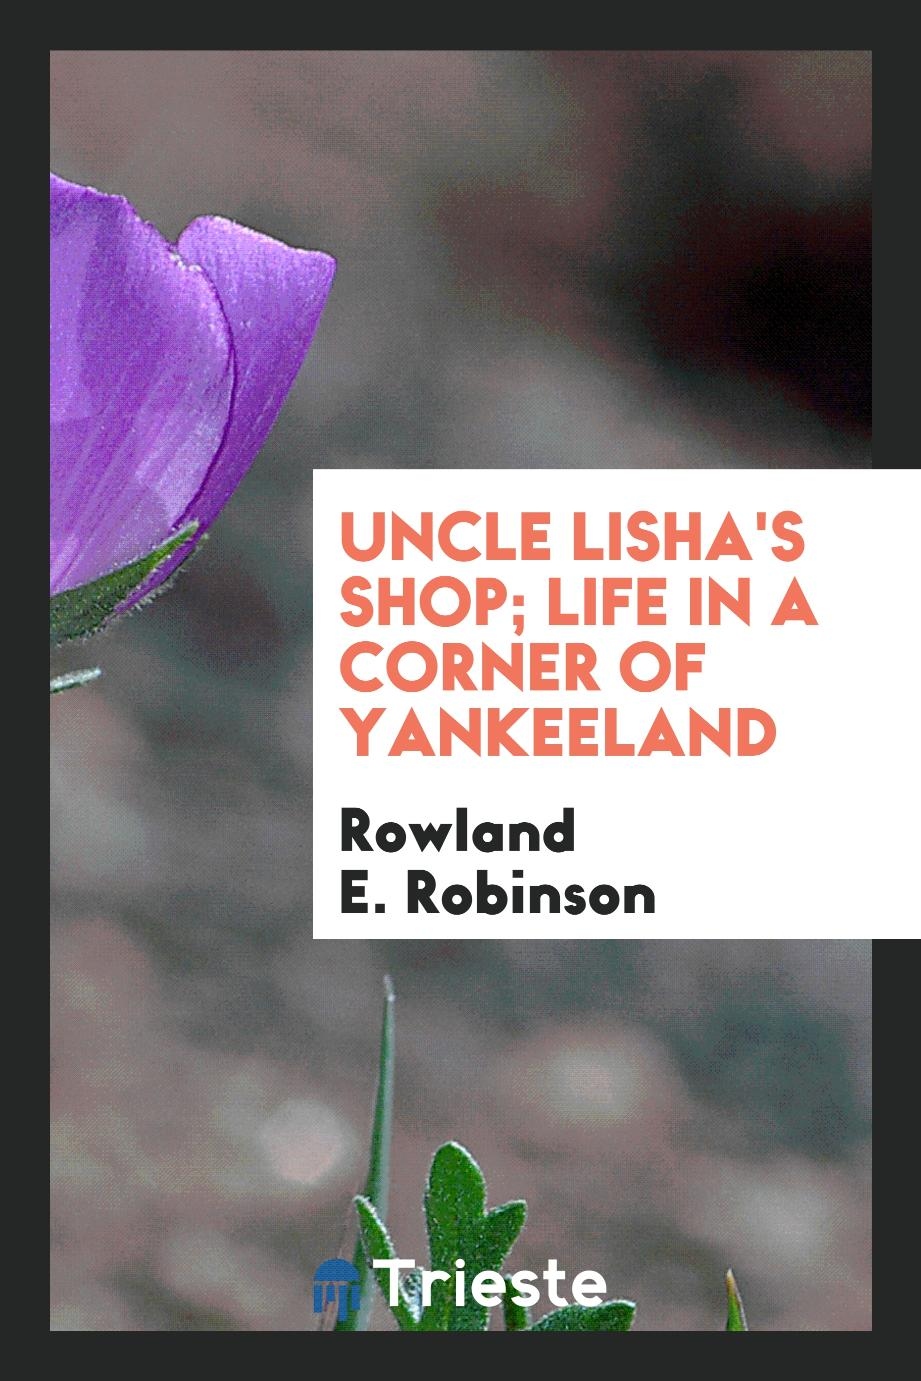 Uncle Lisha's shop; life in a corner of Yankeeland